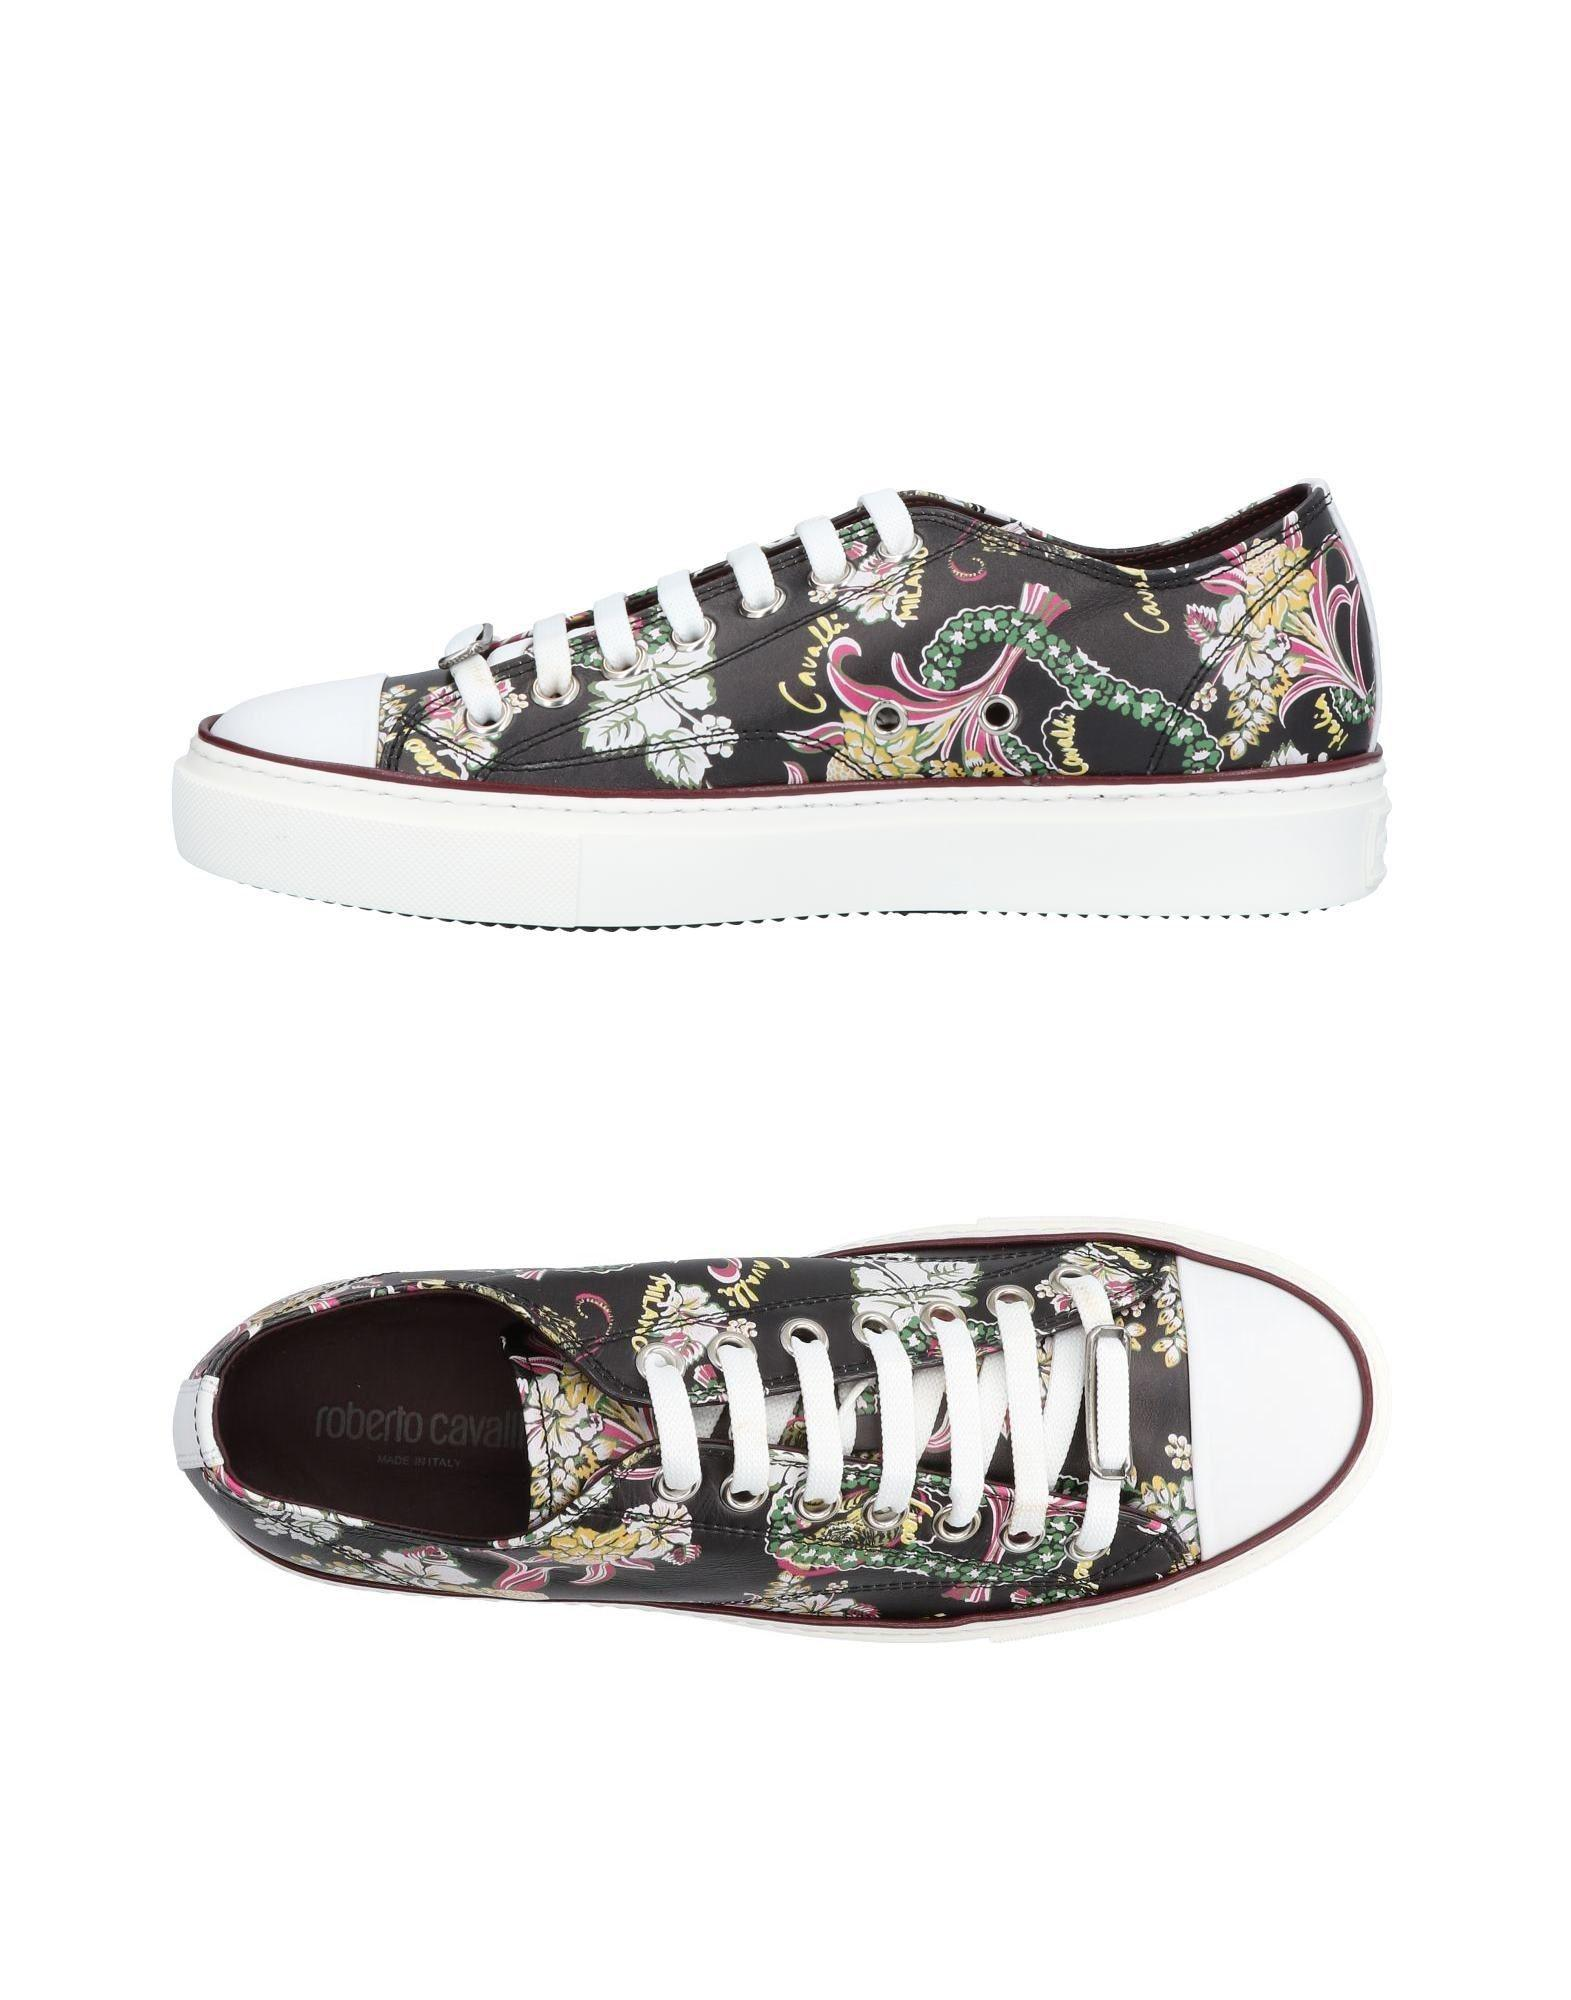 Roberto Cavalli Superga x Embellished Low-Top Sneakers sale visa payment WjtiyLGNv